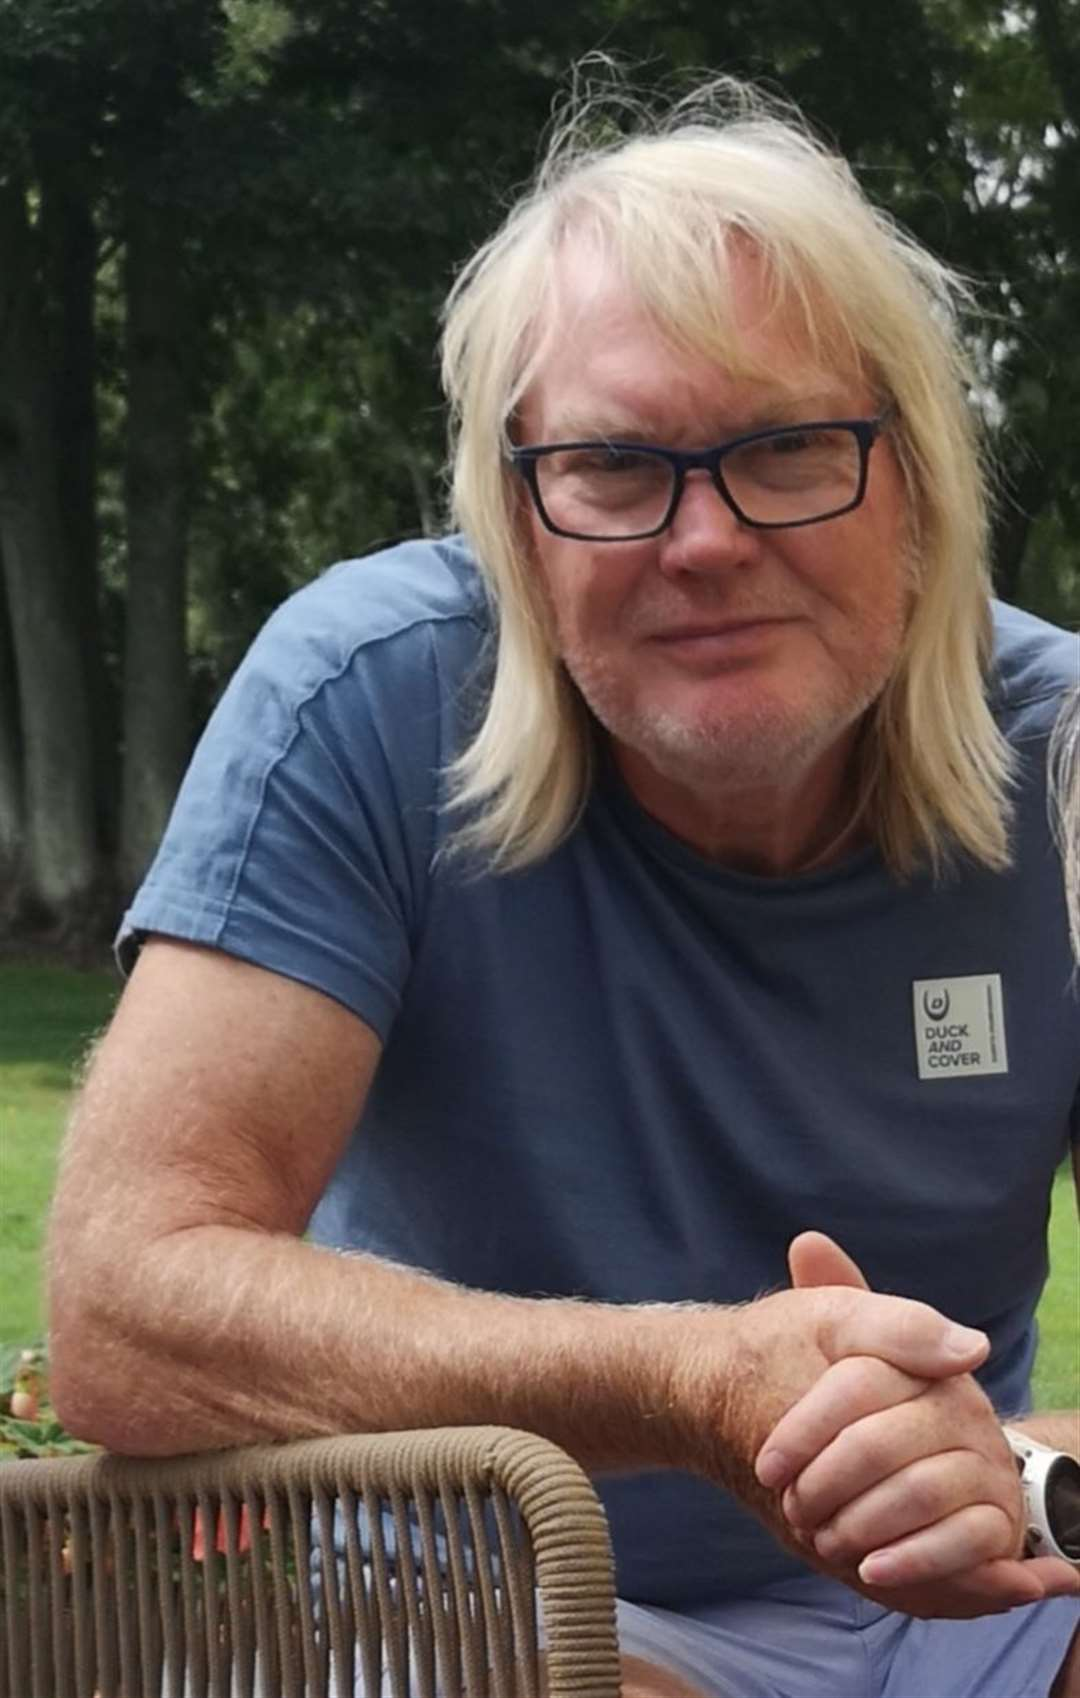 Former West Norfolk Council executive director Chris Bamfield was reported missing in November